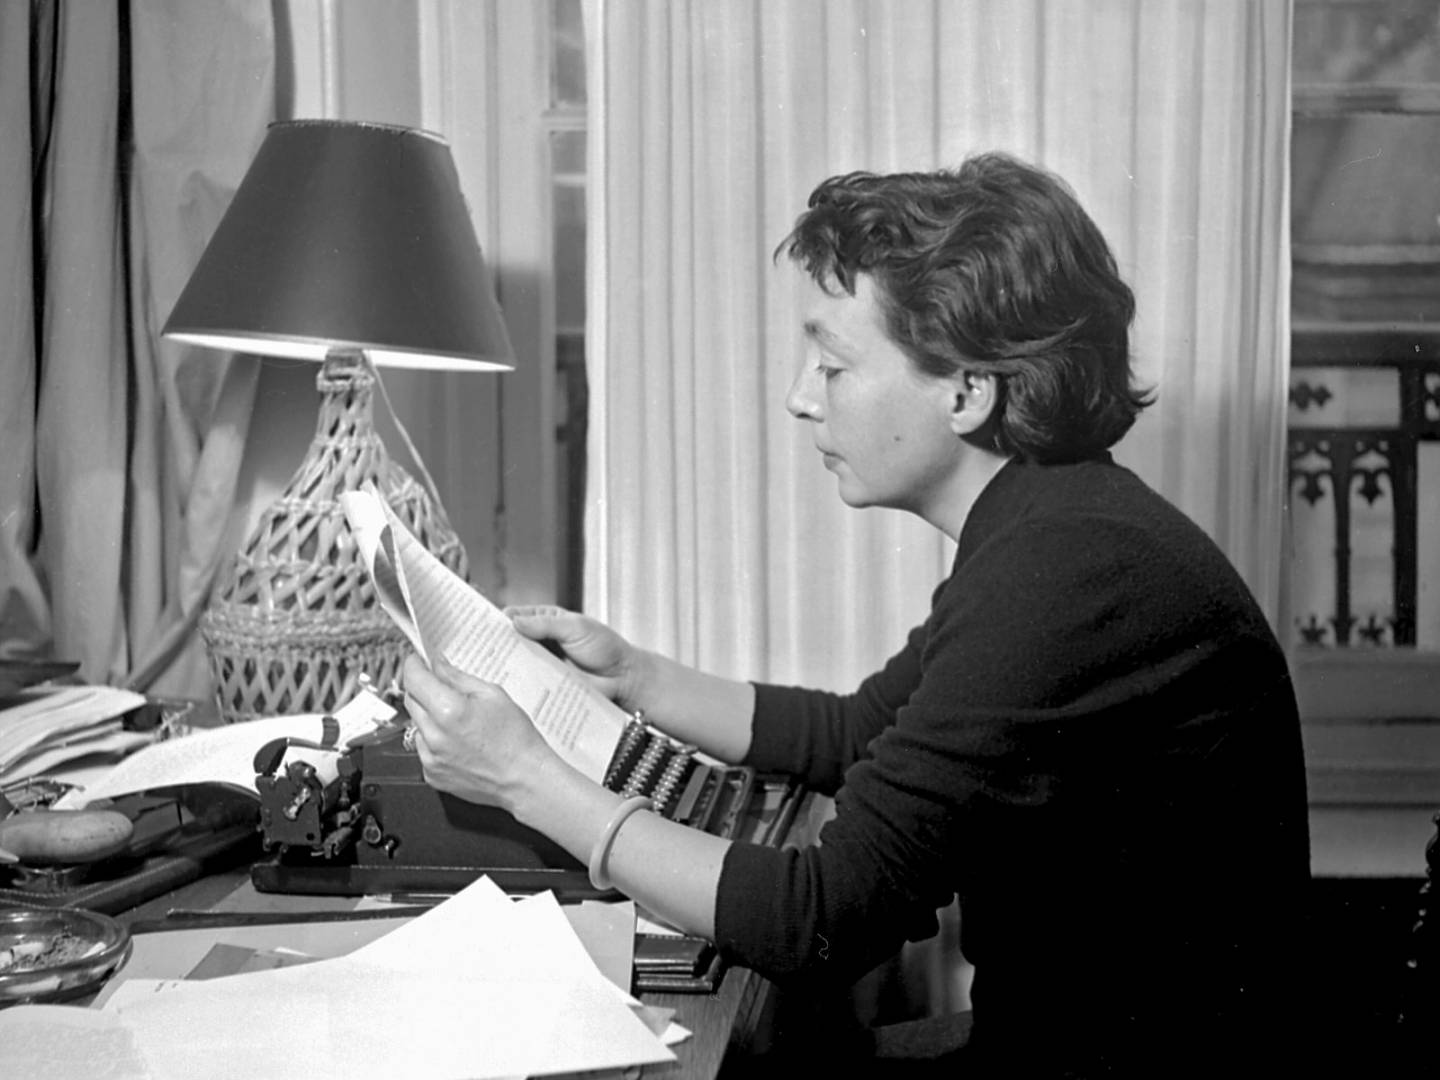 Lindsay Book Review | In the Heat and the Haze: Marguerite Duras's Love Affair | Photo by Boris Lipnitzki, 1955